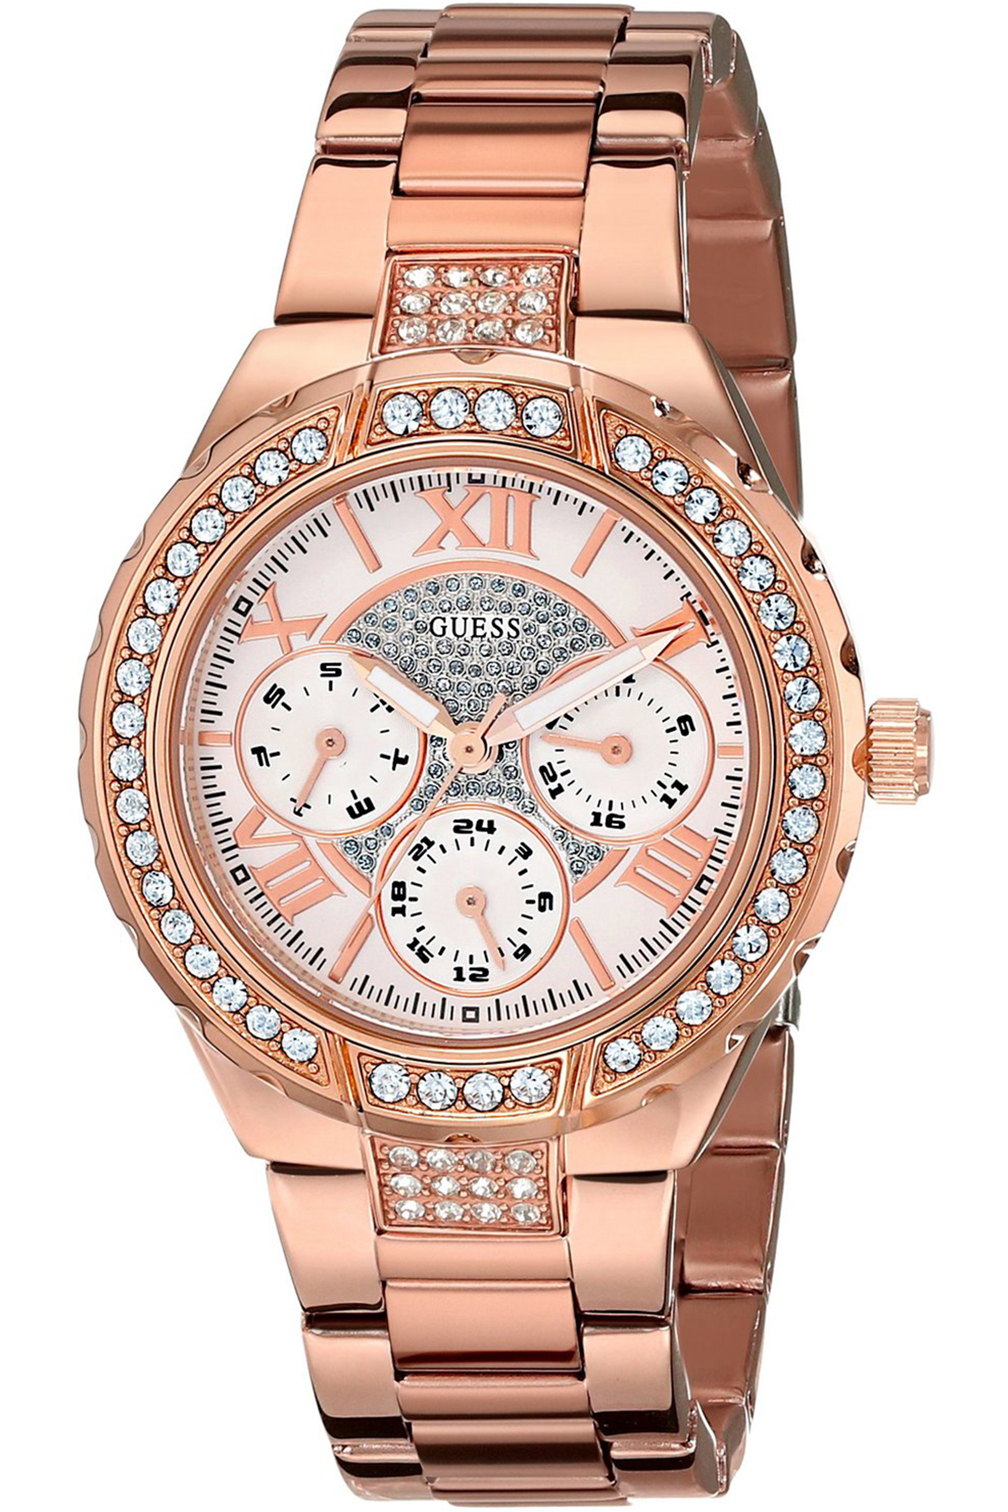 STEEL W0111L3,Ladies Sparkling Hi-Energy,Mid-Size Rose Gold-Tone,Crystal Accented Bezel,WR